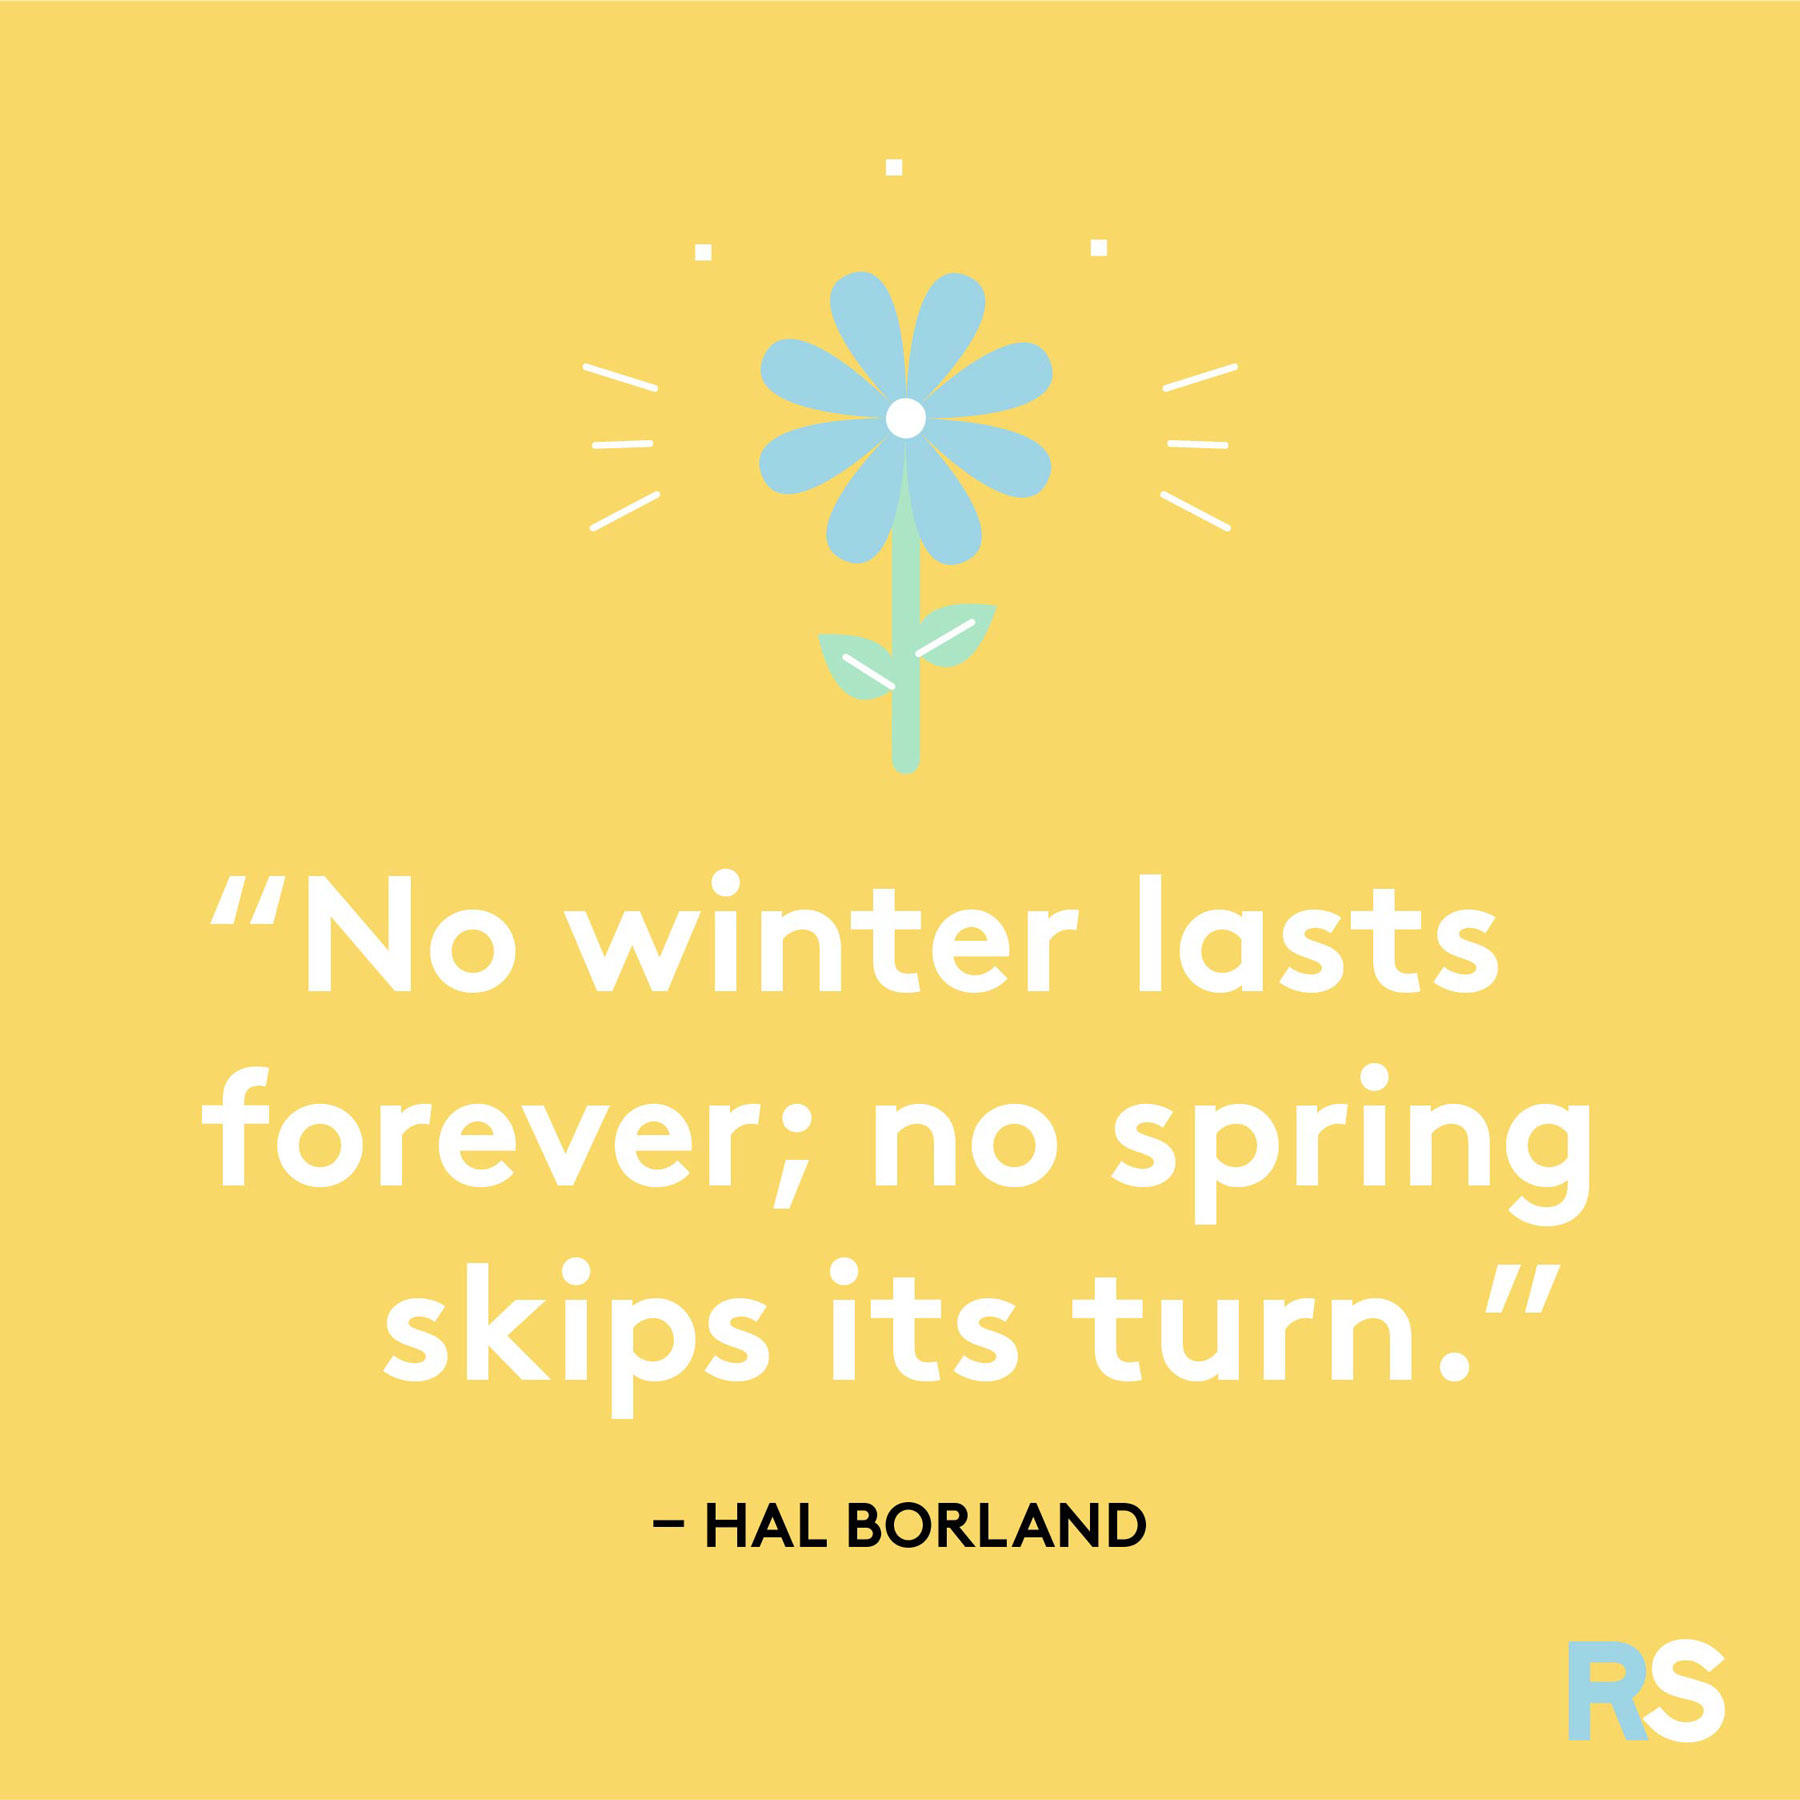 Easter quotes, captions, and messages - Hal Borland spring quote